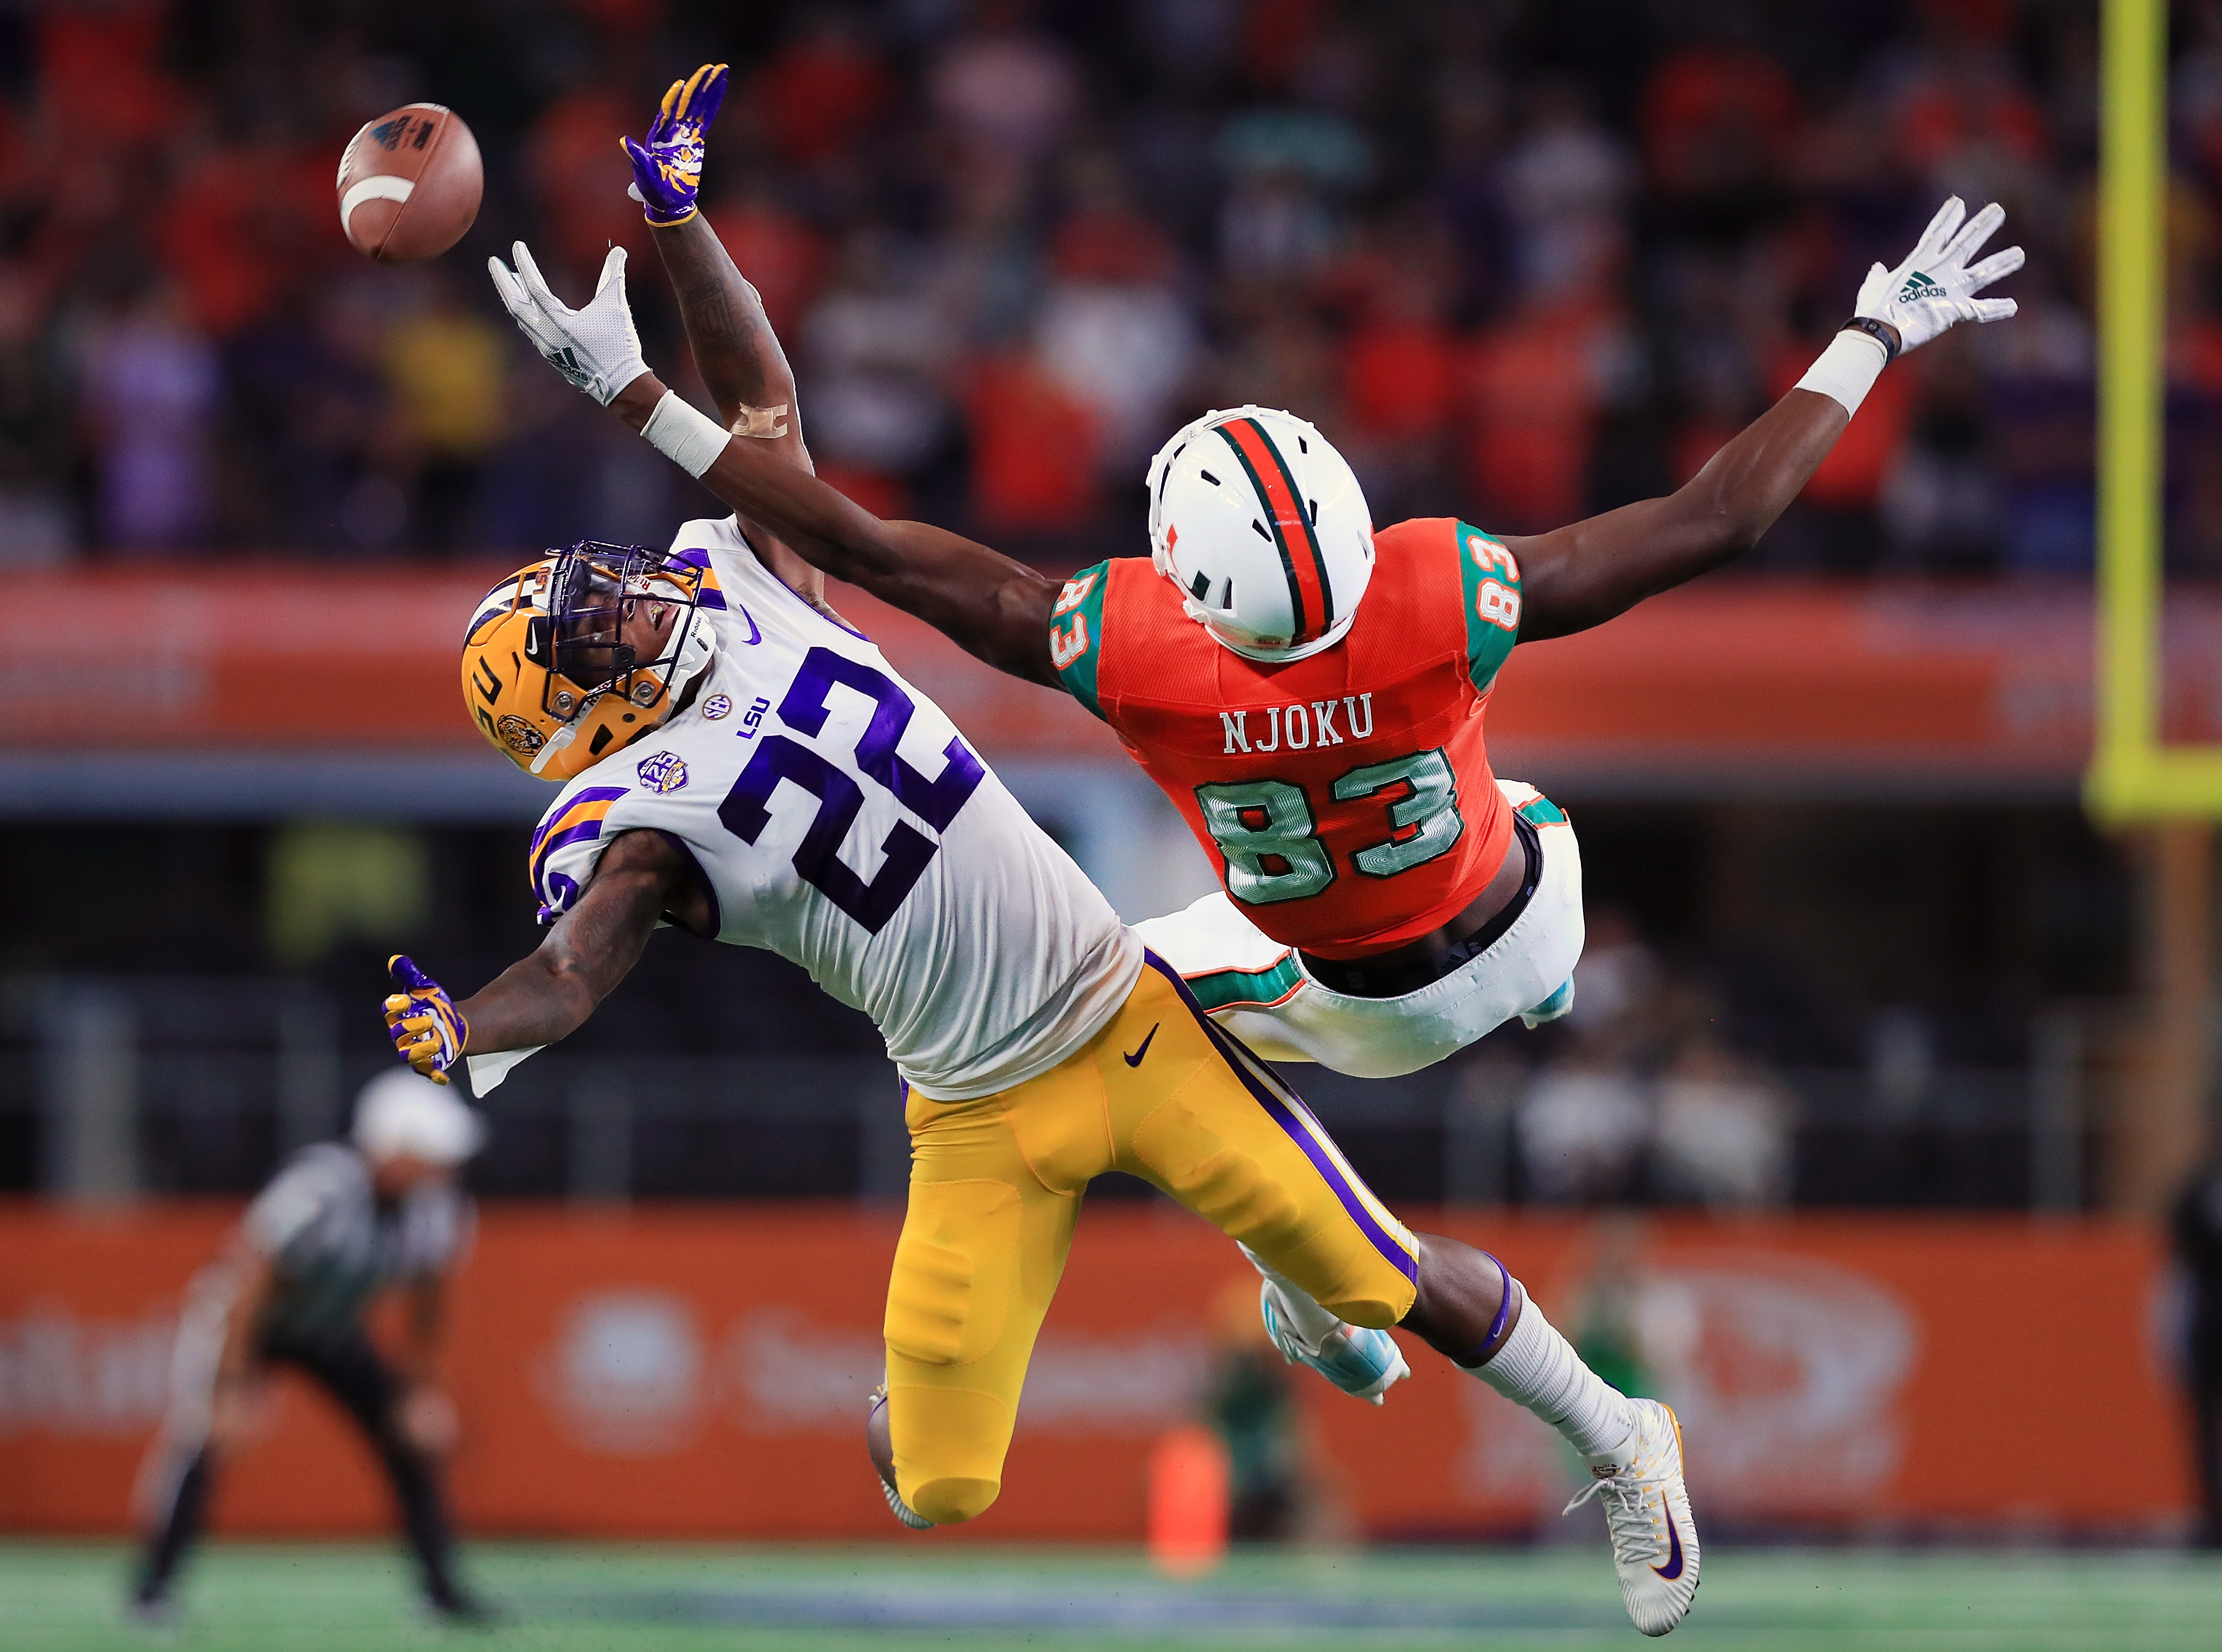 LSU Tigers CB Kristian Fulton breaks up a pass intended for Miami Hurricanes WR Evidence Njoku, Sep. 2, 2018.